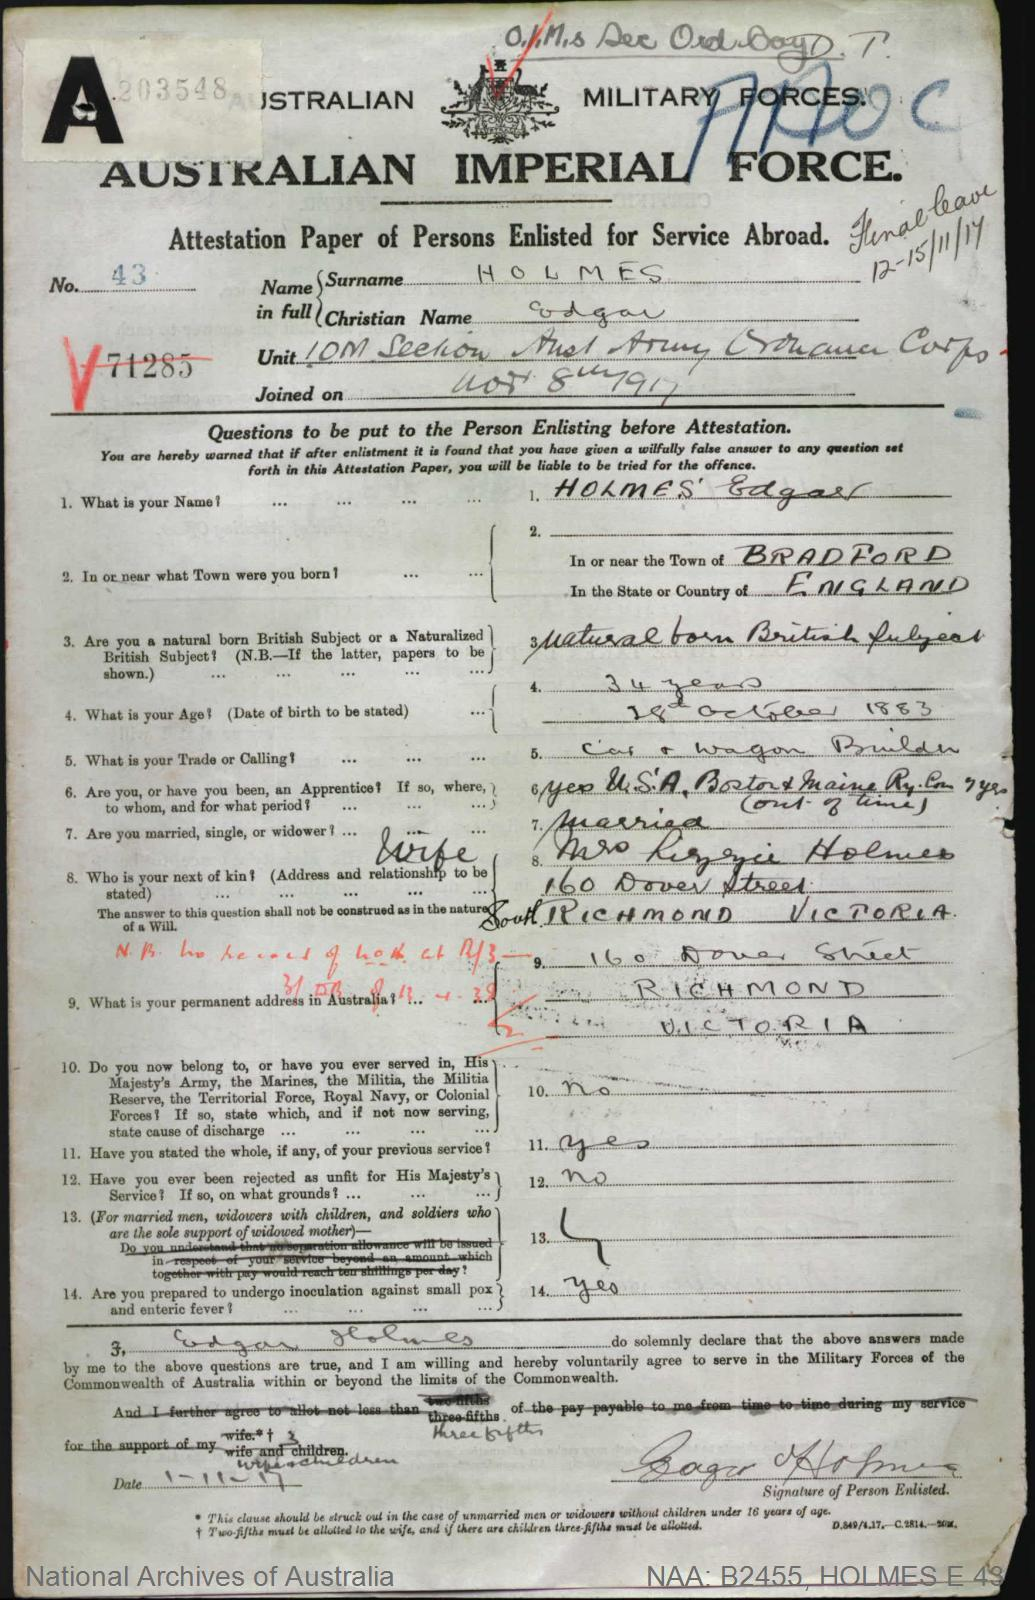 HOLMES Edgar : Service Number - 43 : Place of Birth - Bradford England : Place of Enlistment - Melbourne Vic : Next of Kin - (Wife) HOLMES L